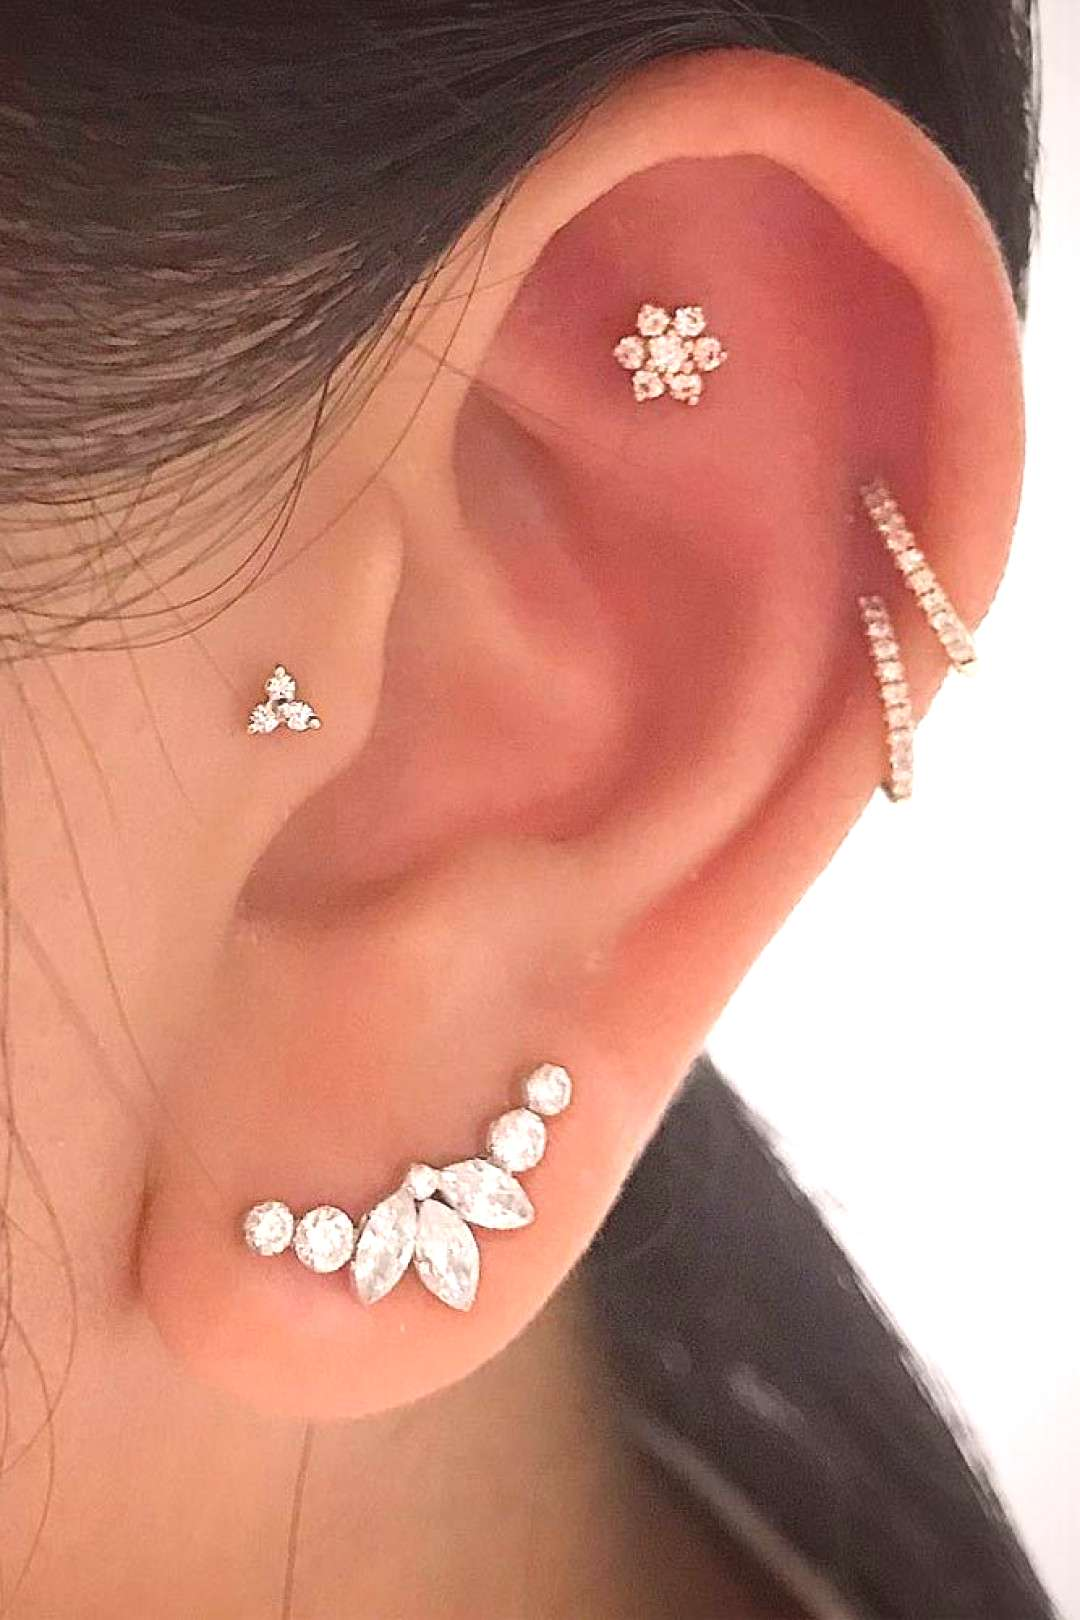 8 most popular types of ear piercings to consider ... - 8 most popular types of ear piercings to c